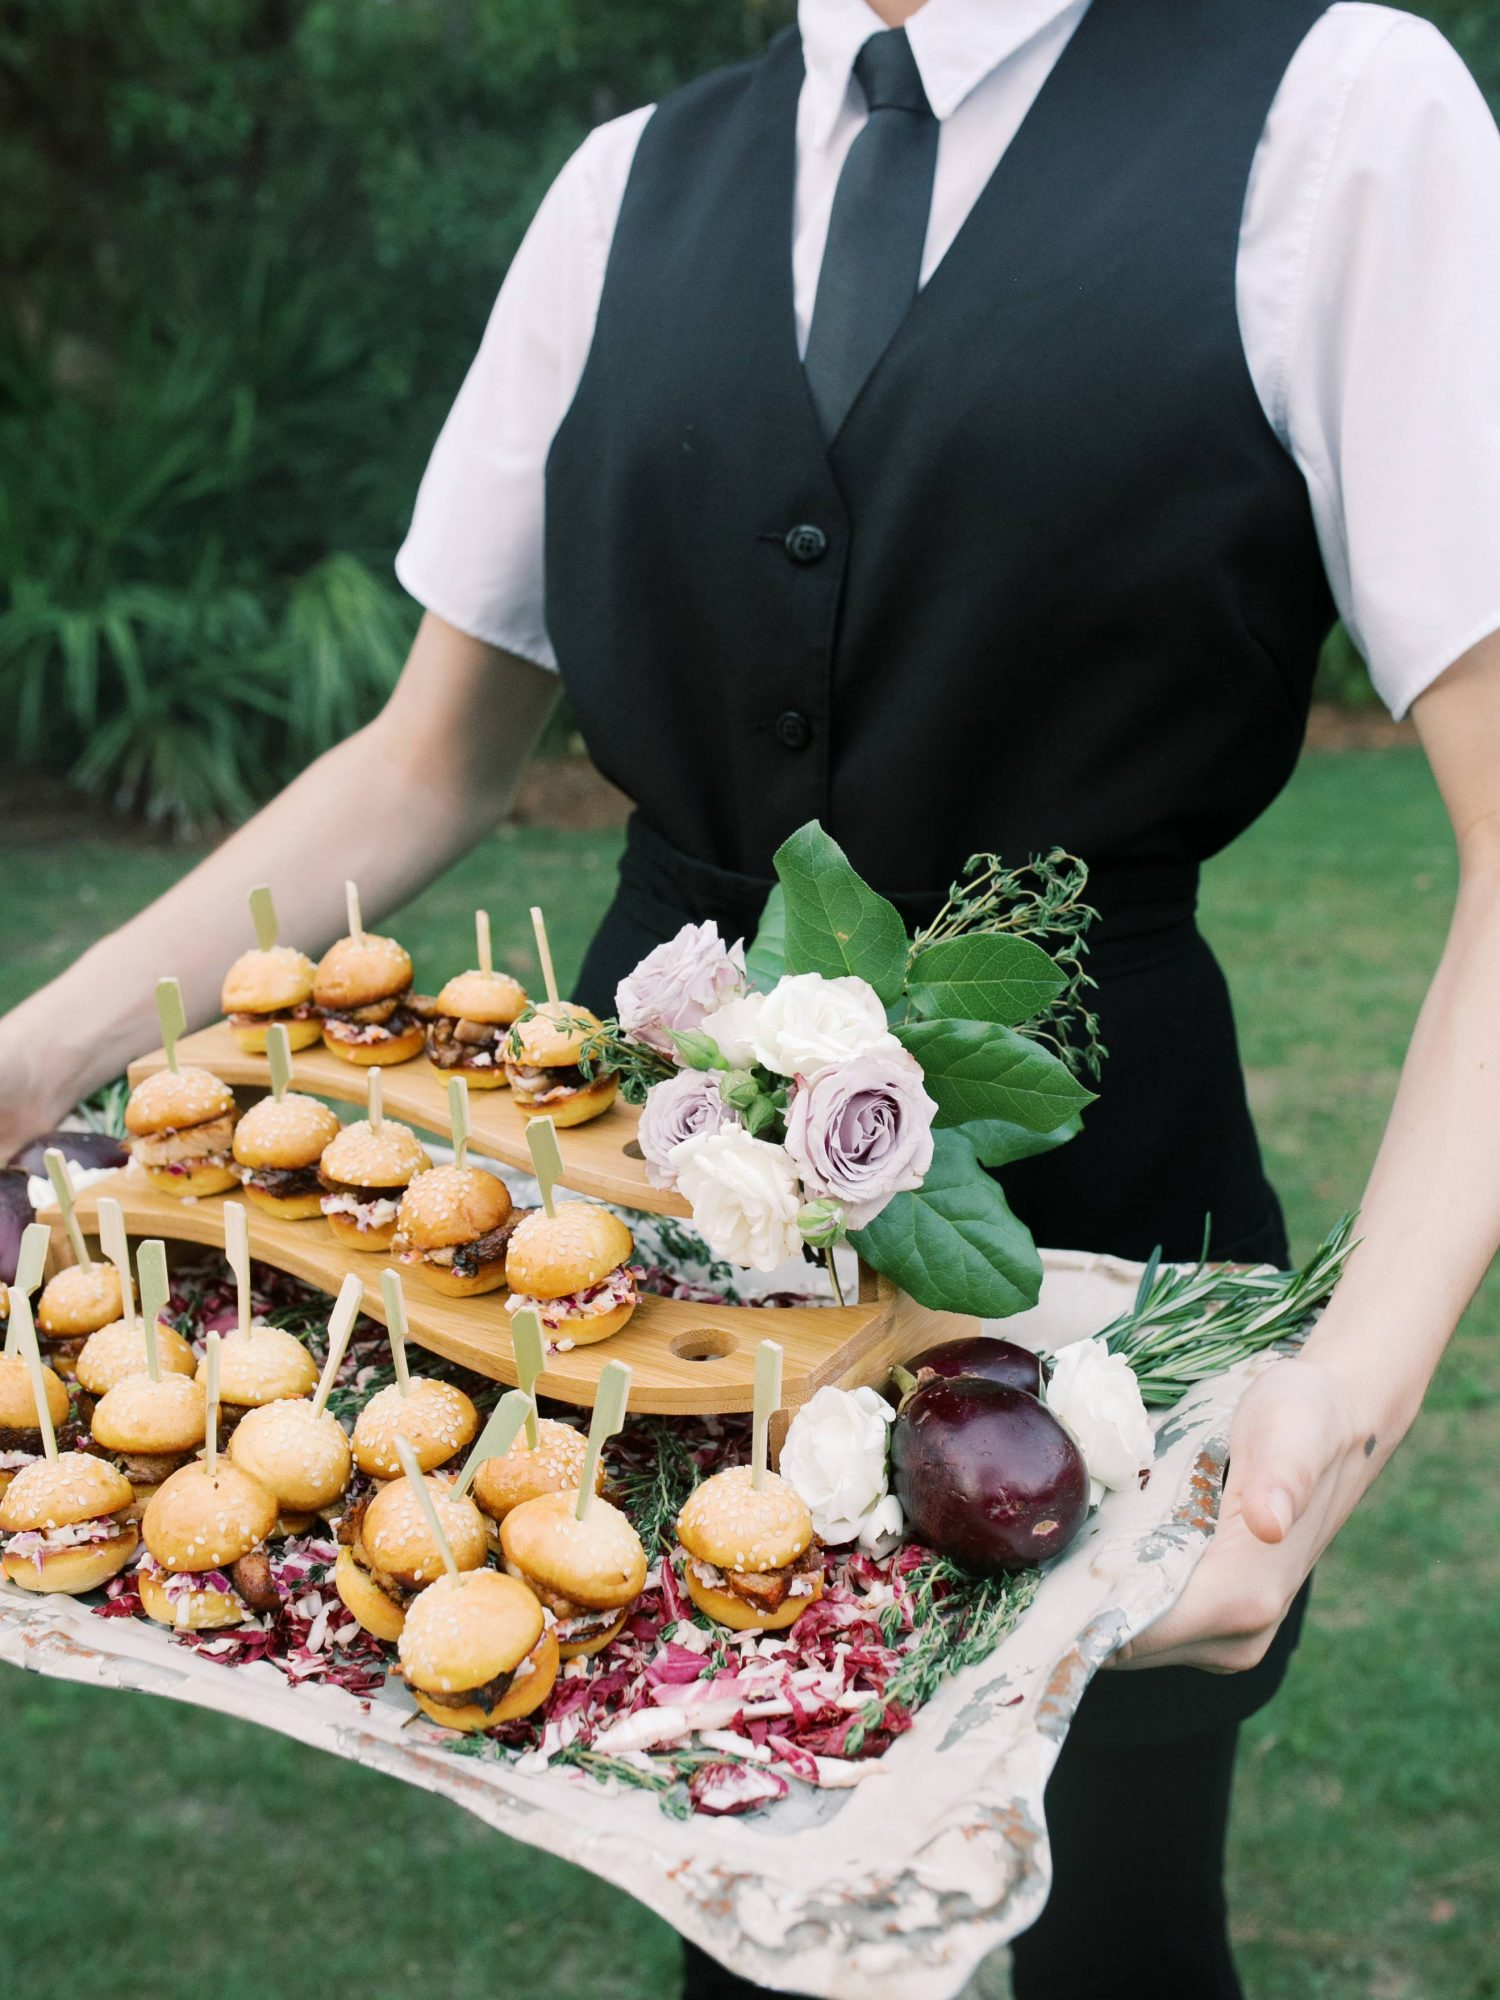 leighton craig wedding food tray with sliders